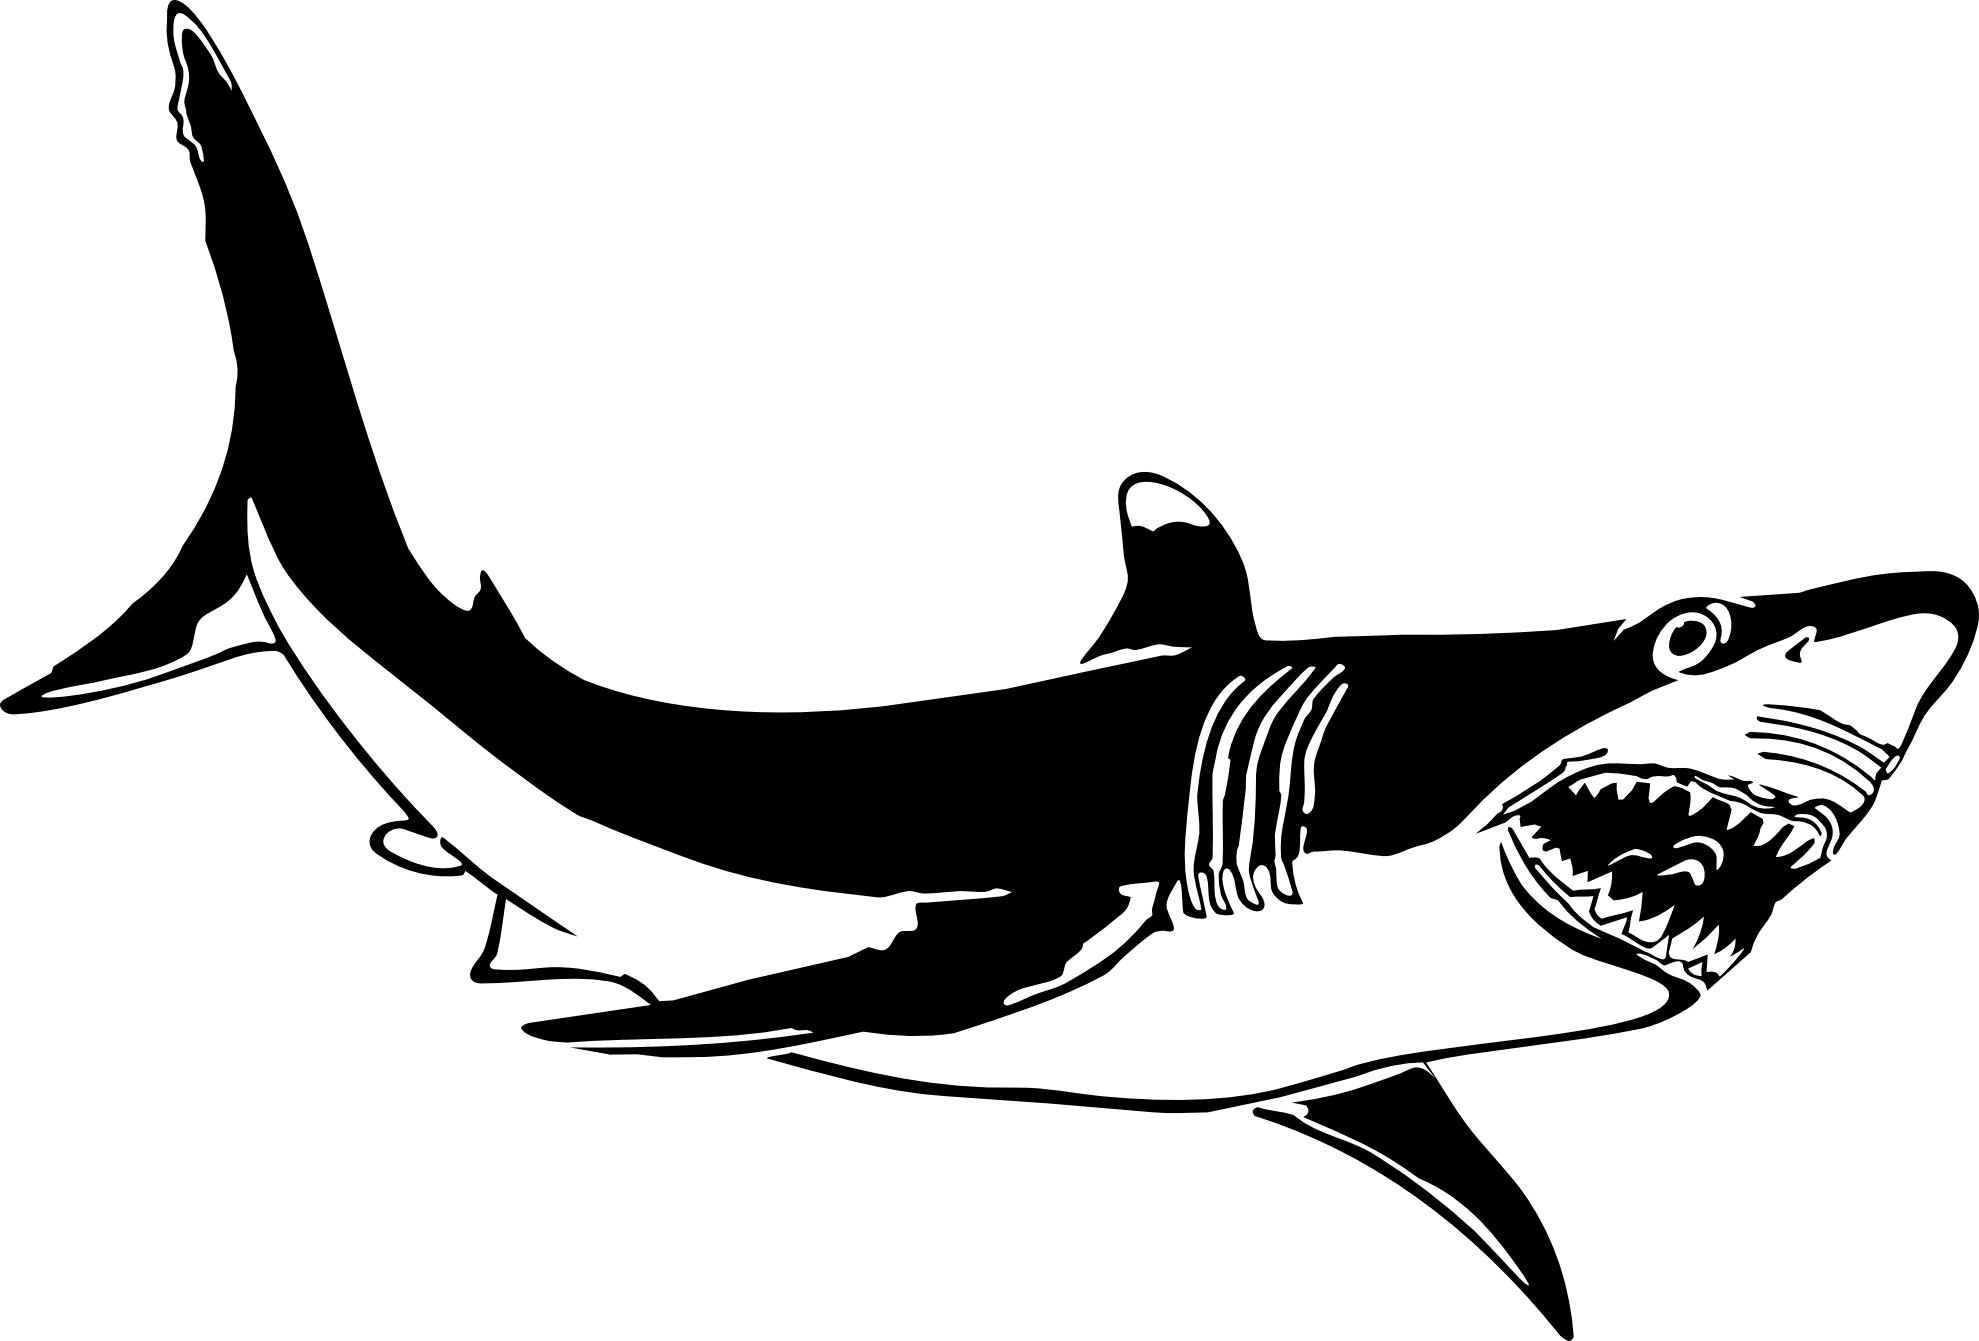 Free Black And White Shark Pictures, Download Free Clip Art.